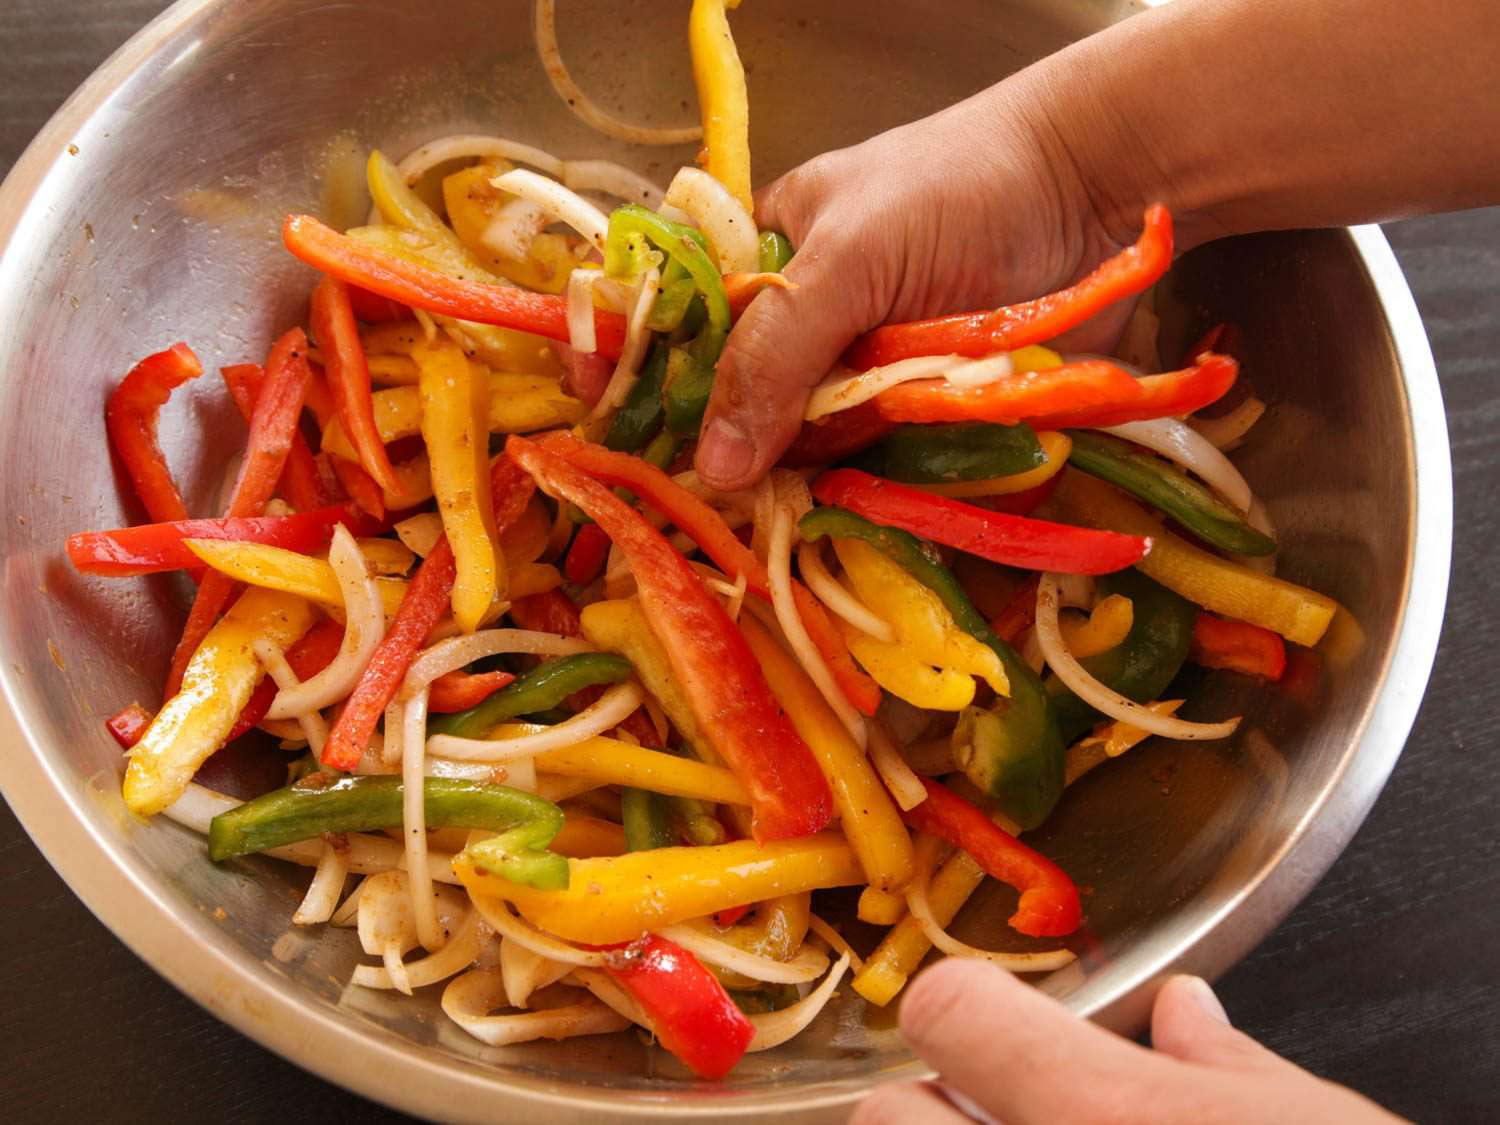 Hands tossing strips of onion and green, yellow, and red bell pepper in a metal bowl for fajitas.